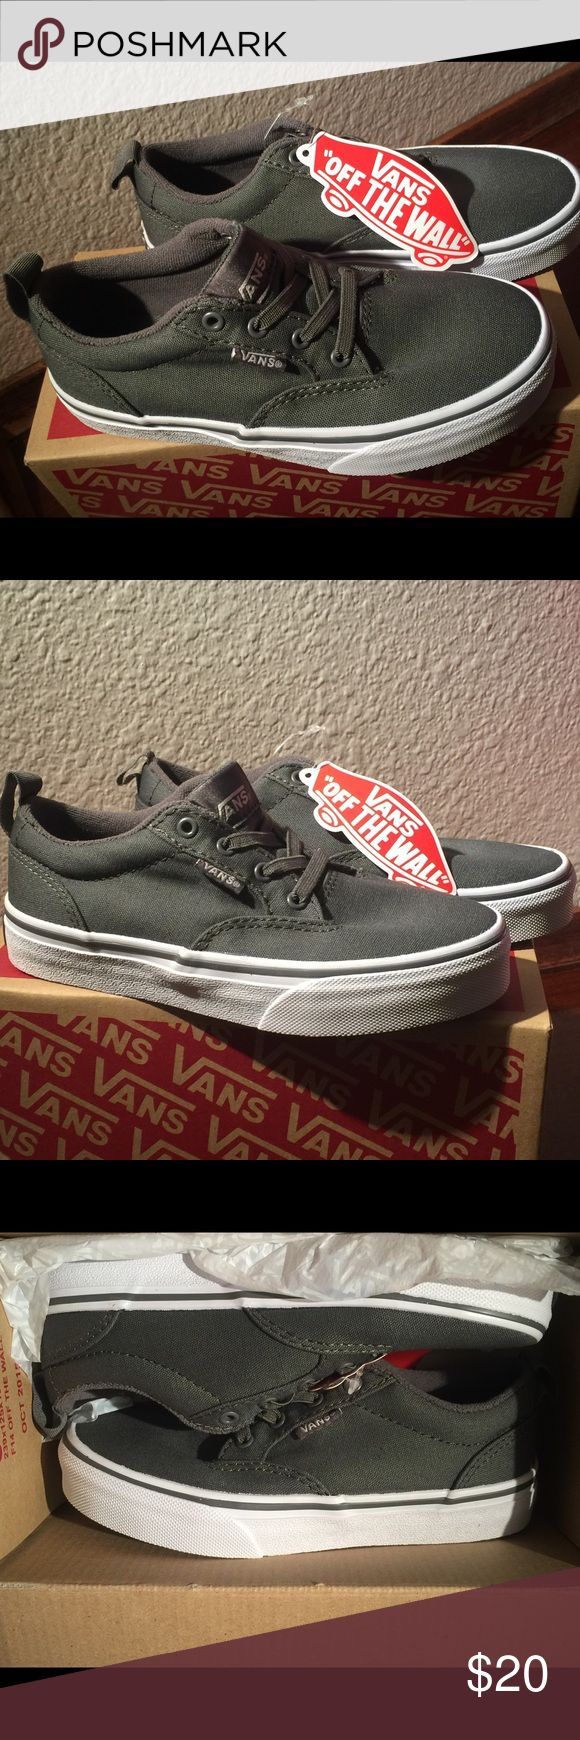 Brand new in box boys vans. Slip on style. Features slip on laces! Gray on great new in box with tags! Offers welcome. Vans Shoes Sneakers